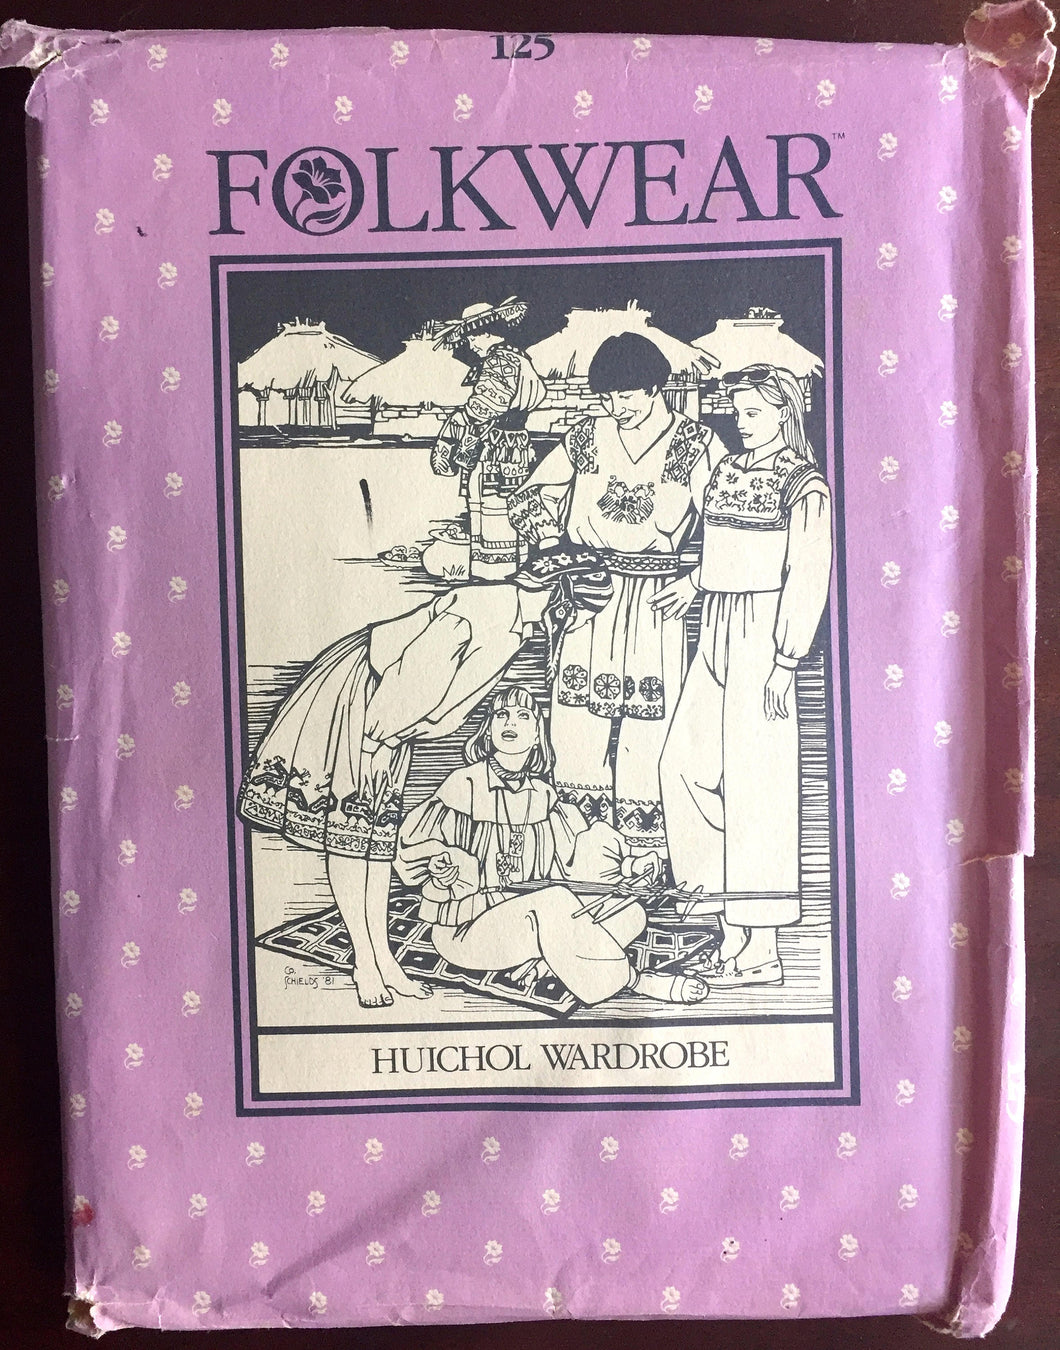 1980's Folkwear Huichol Wardrobe, Tunic, Pants, Skirt, Top, Tabard pattern - Bust 30.5-38